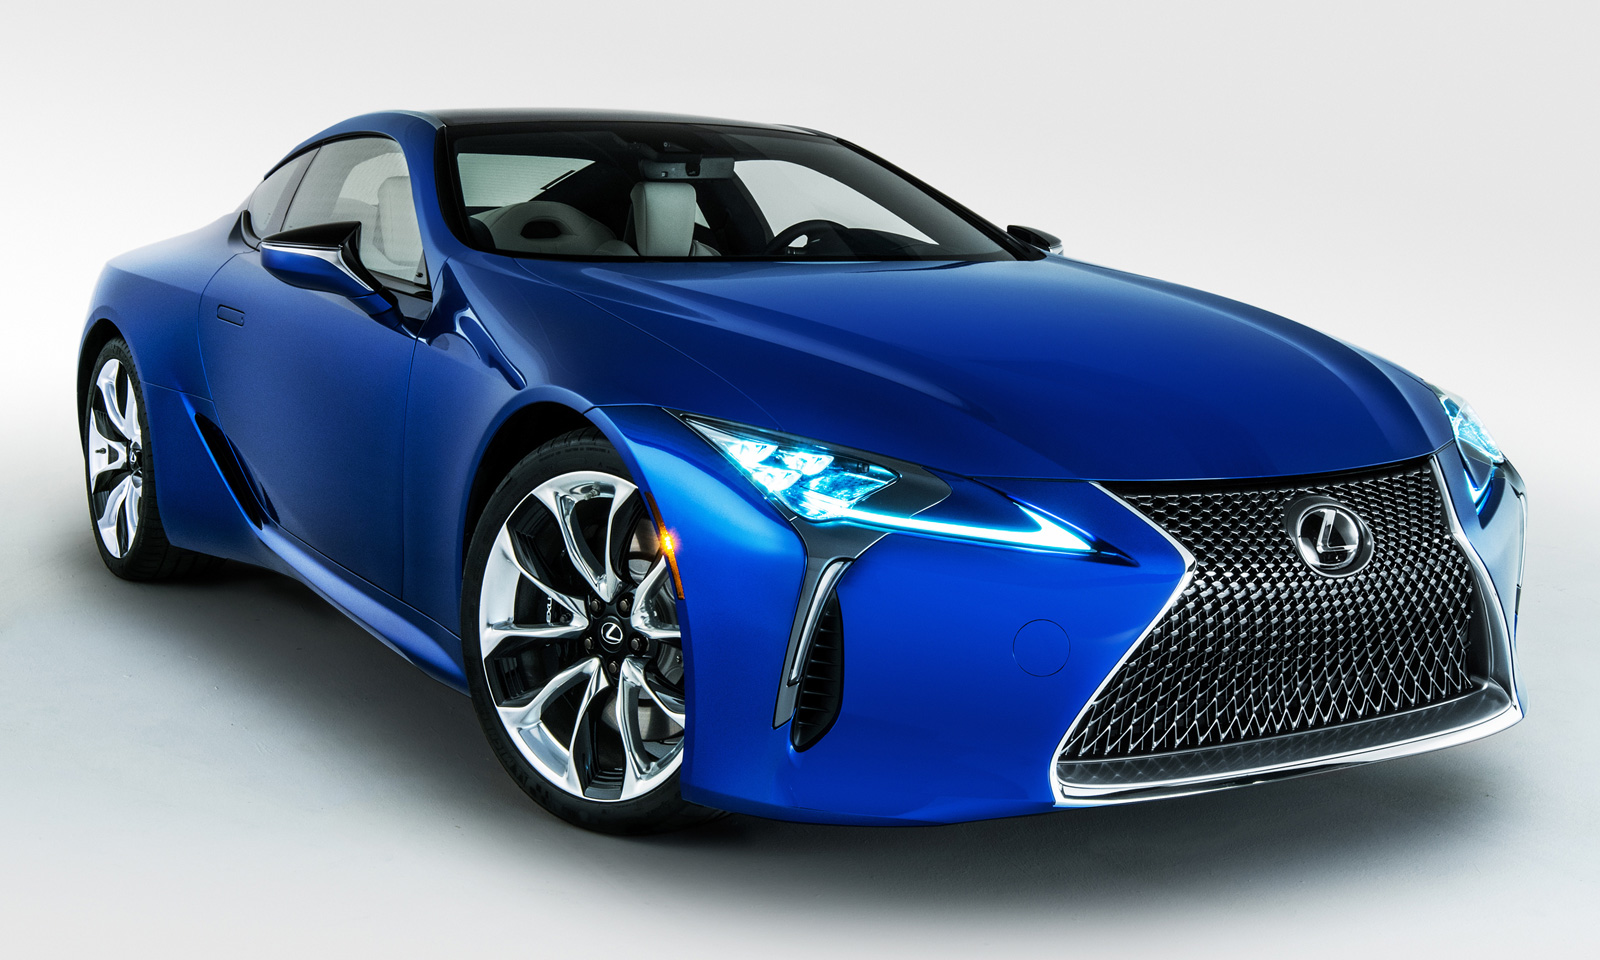 Lexus 2018 LC Inspiration Series